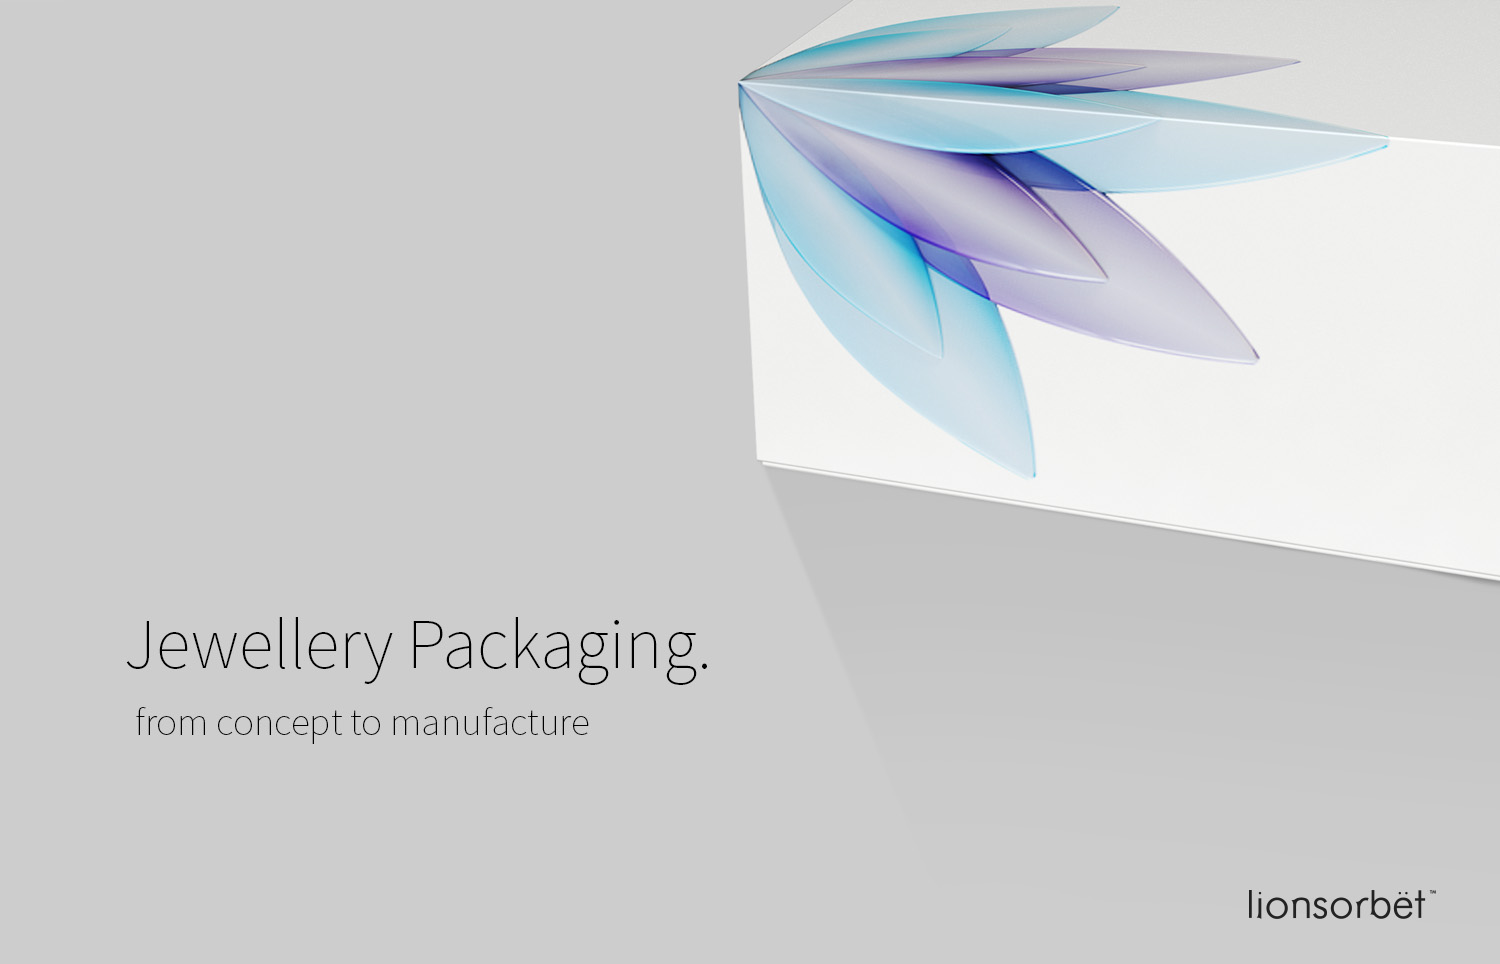 jewellery packaging design concepts